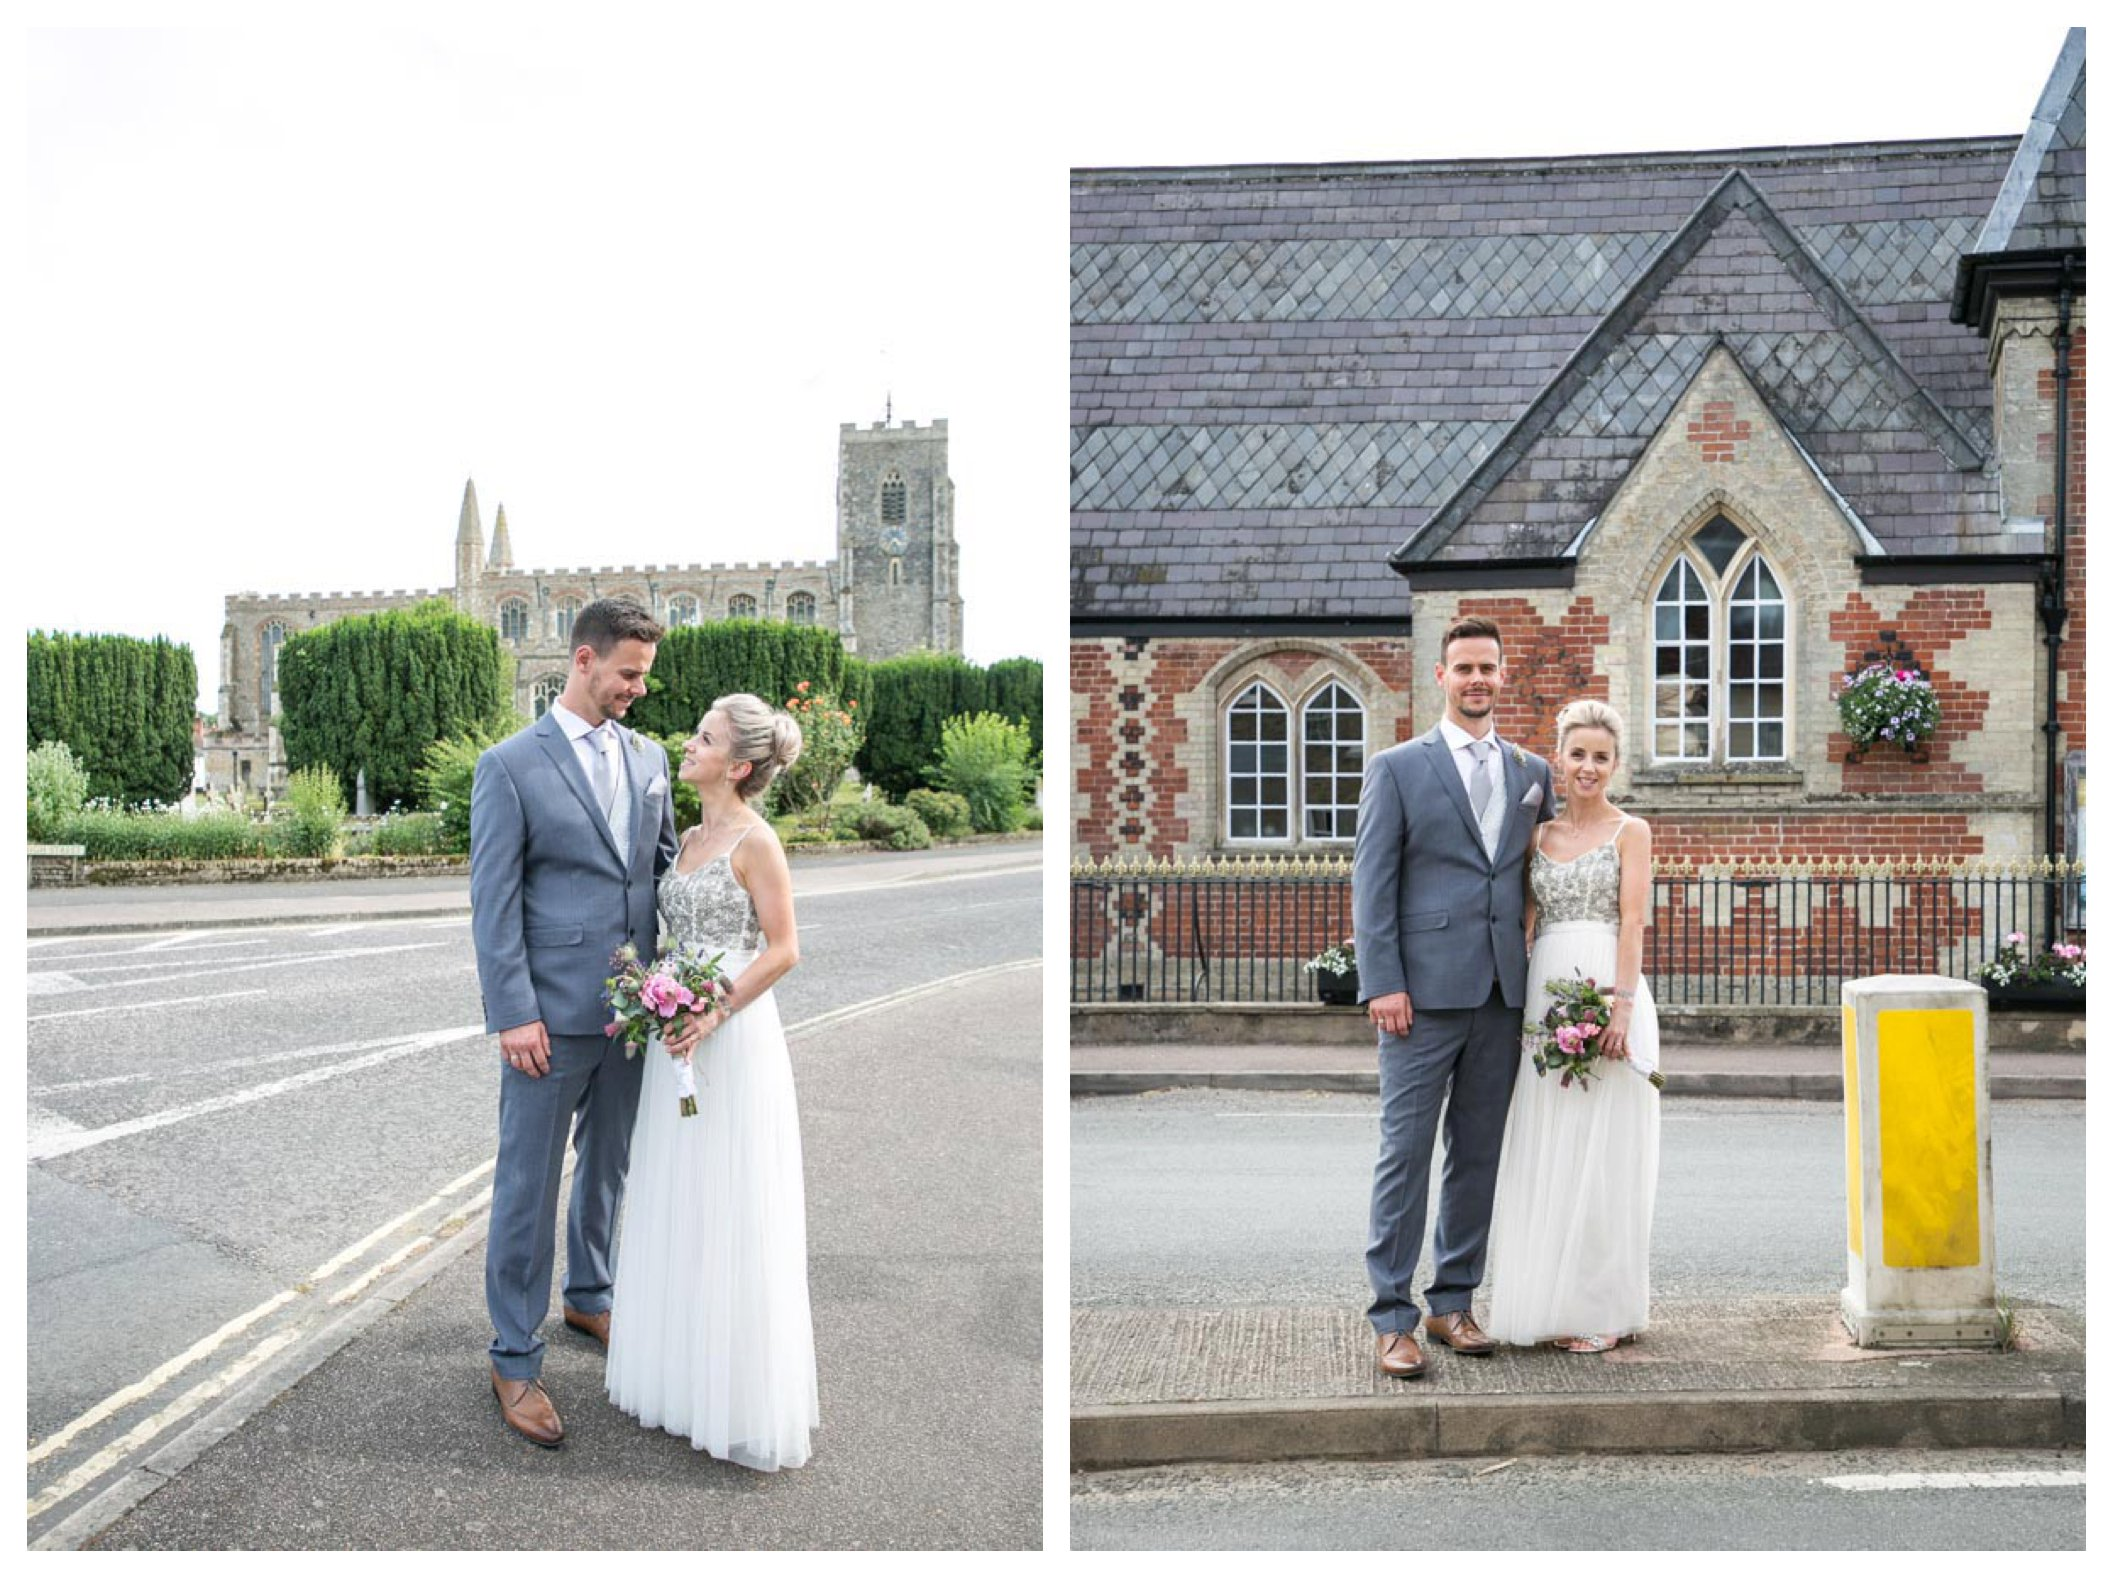 bride and groom standing near church in Clare Suffolk